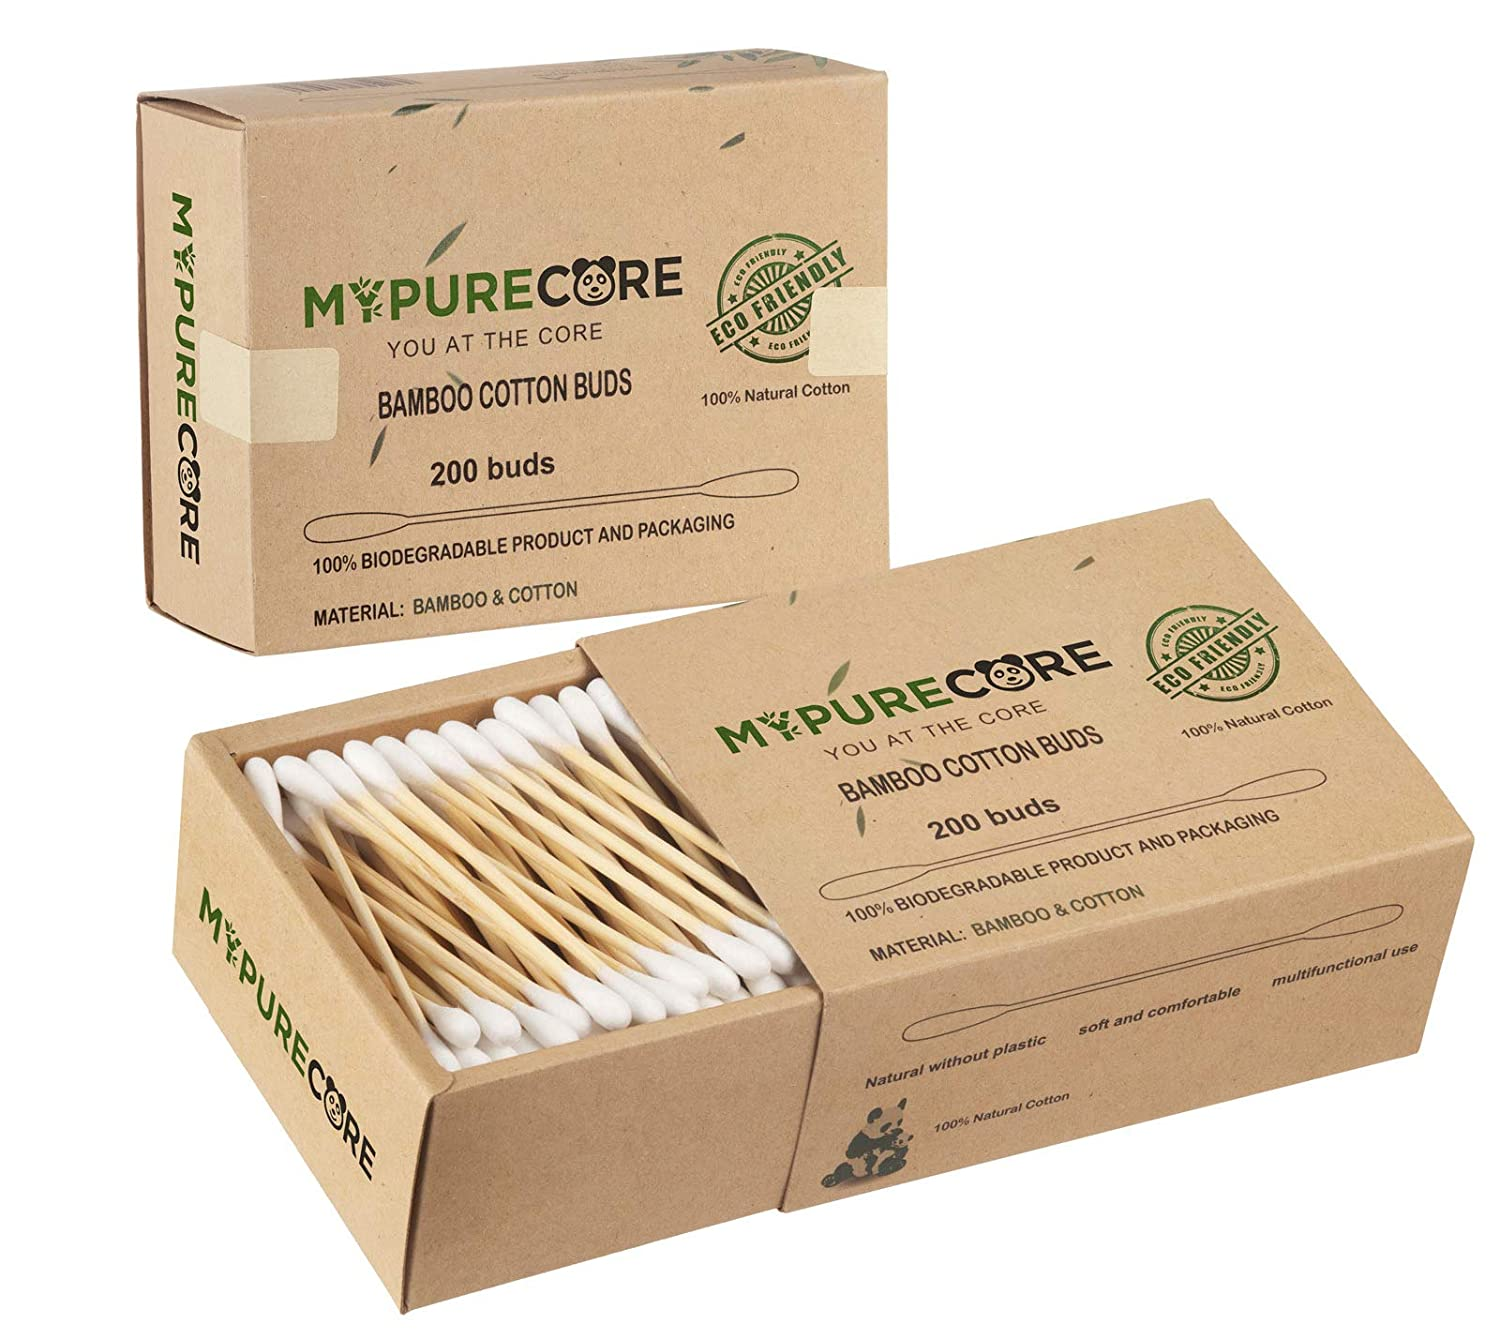 Beautiful Gentle Natural Bamboo Cotton Buds Set by MYPURECORE | 400 Biodegradable Eco Friendly Cotton Buds | Non Plastic Stick Cotton Buds | Vegan Bamboo Cotton Swaps | Perfect for the Whole Family